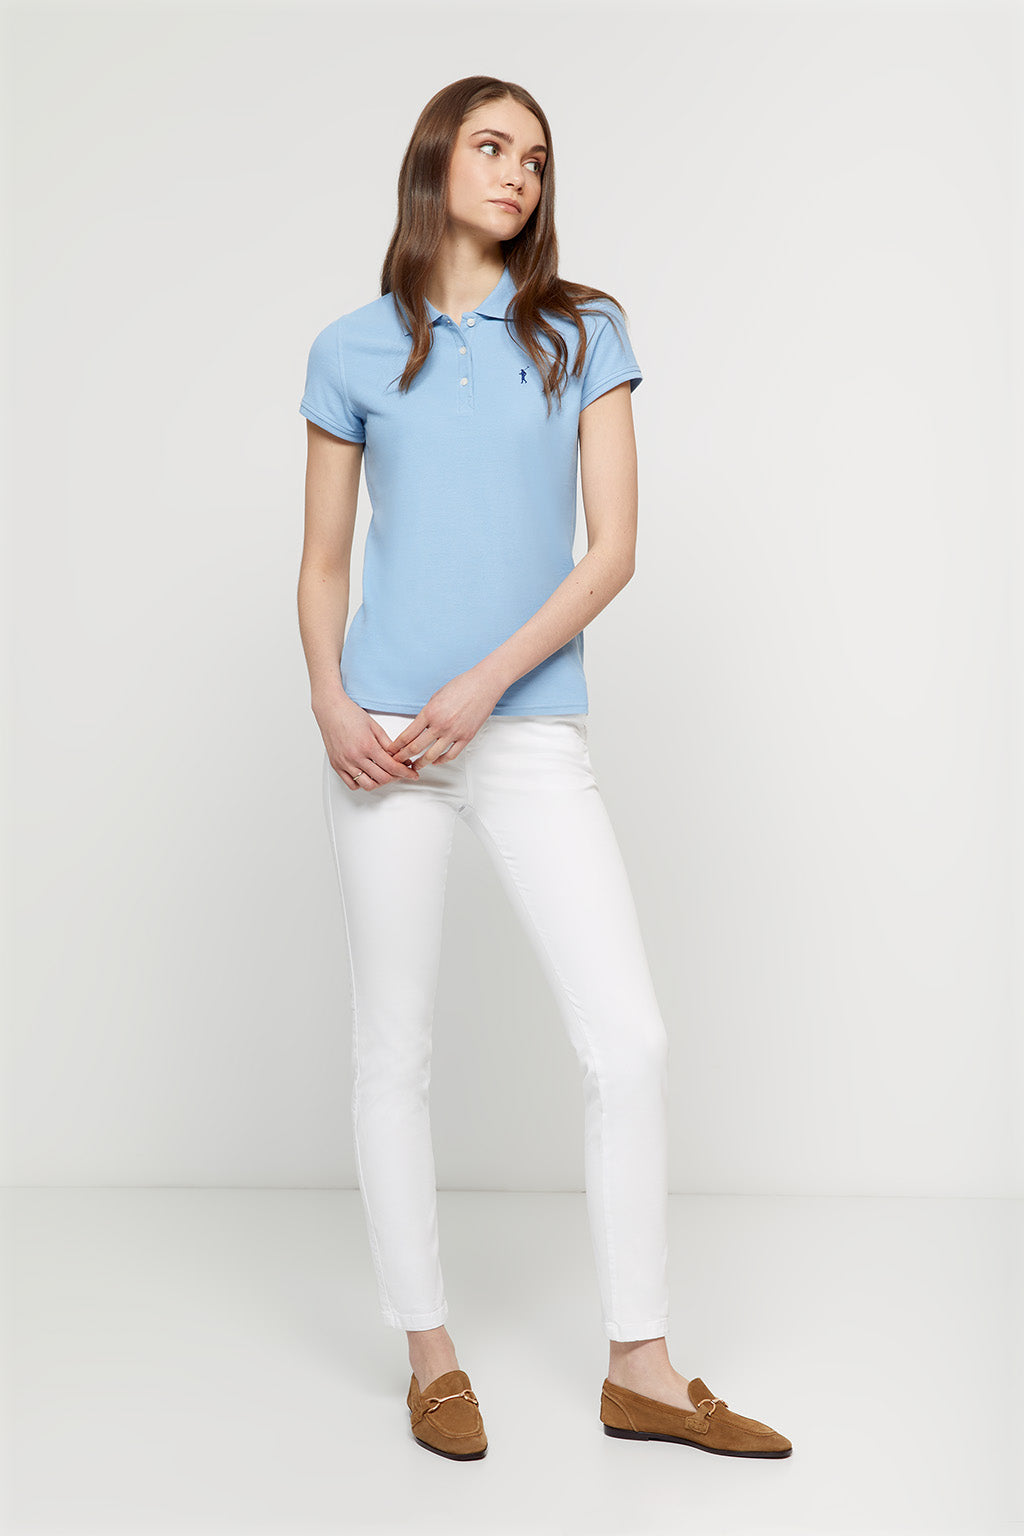 Sky blue polo shirt with embroidered logo